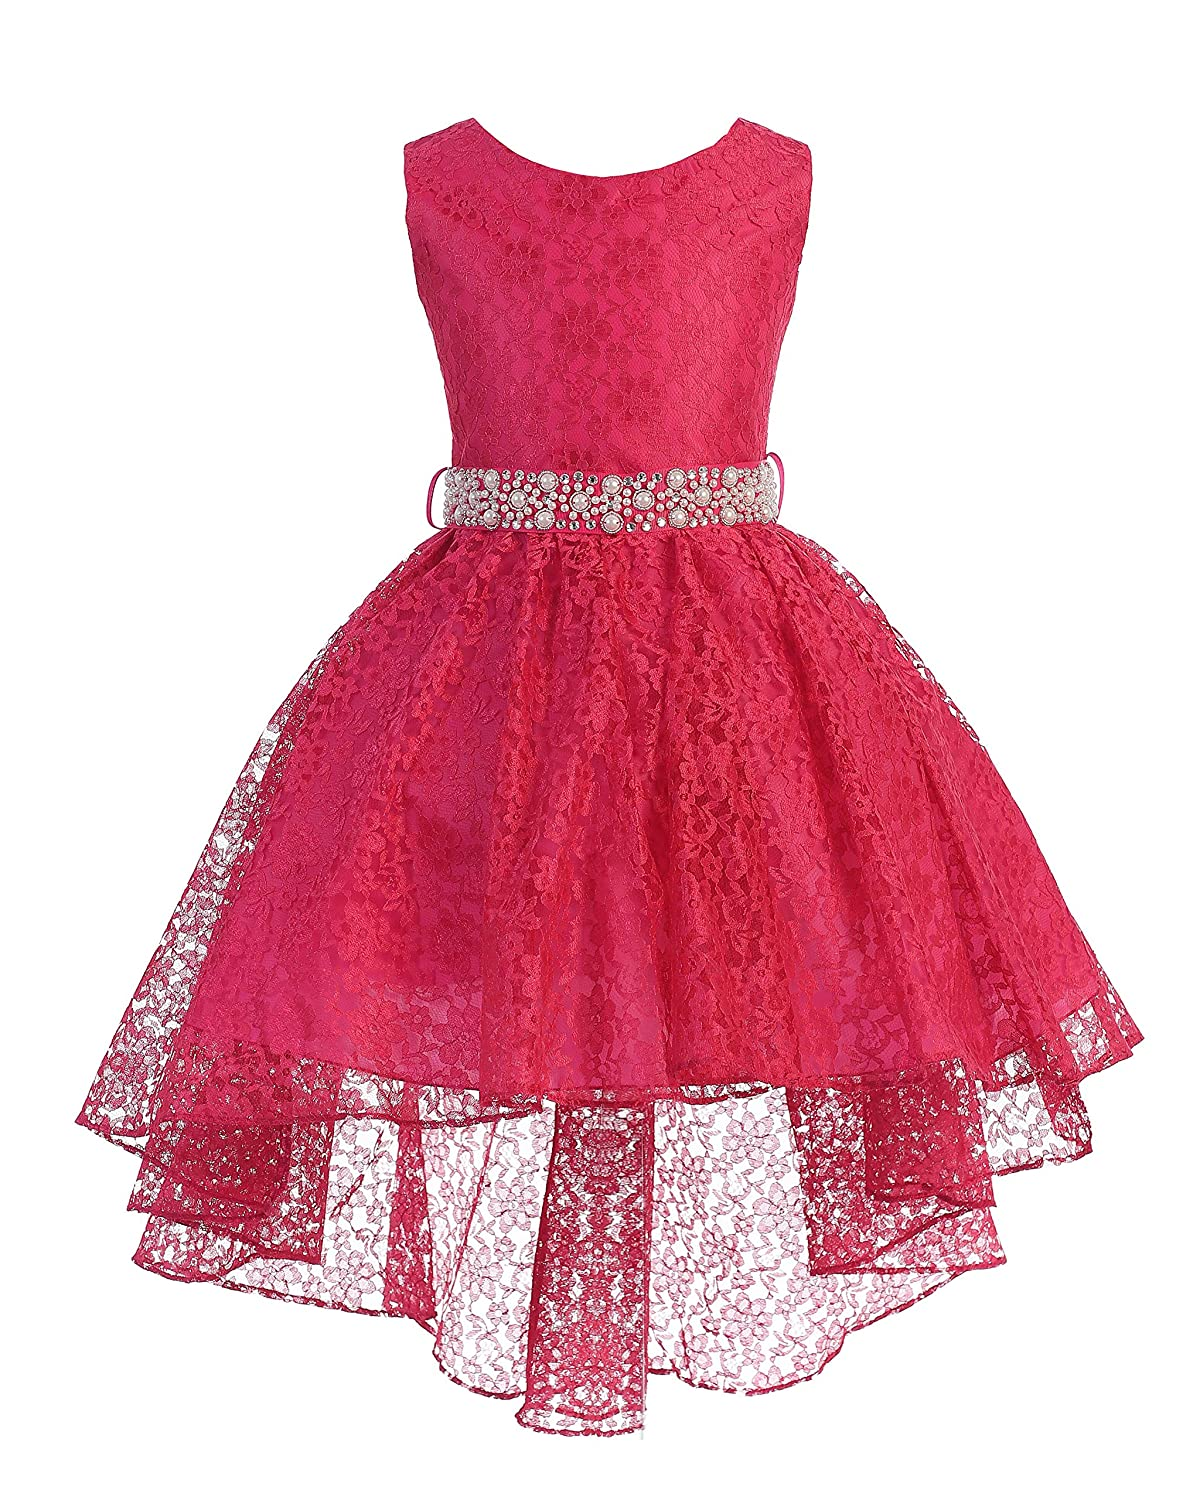 160fc6ec38 Amazon.com: iGirldress High Low Lace Dress with Rhinestones Belt Pageant  Flower Girl Dress Size 2-20: Clothing